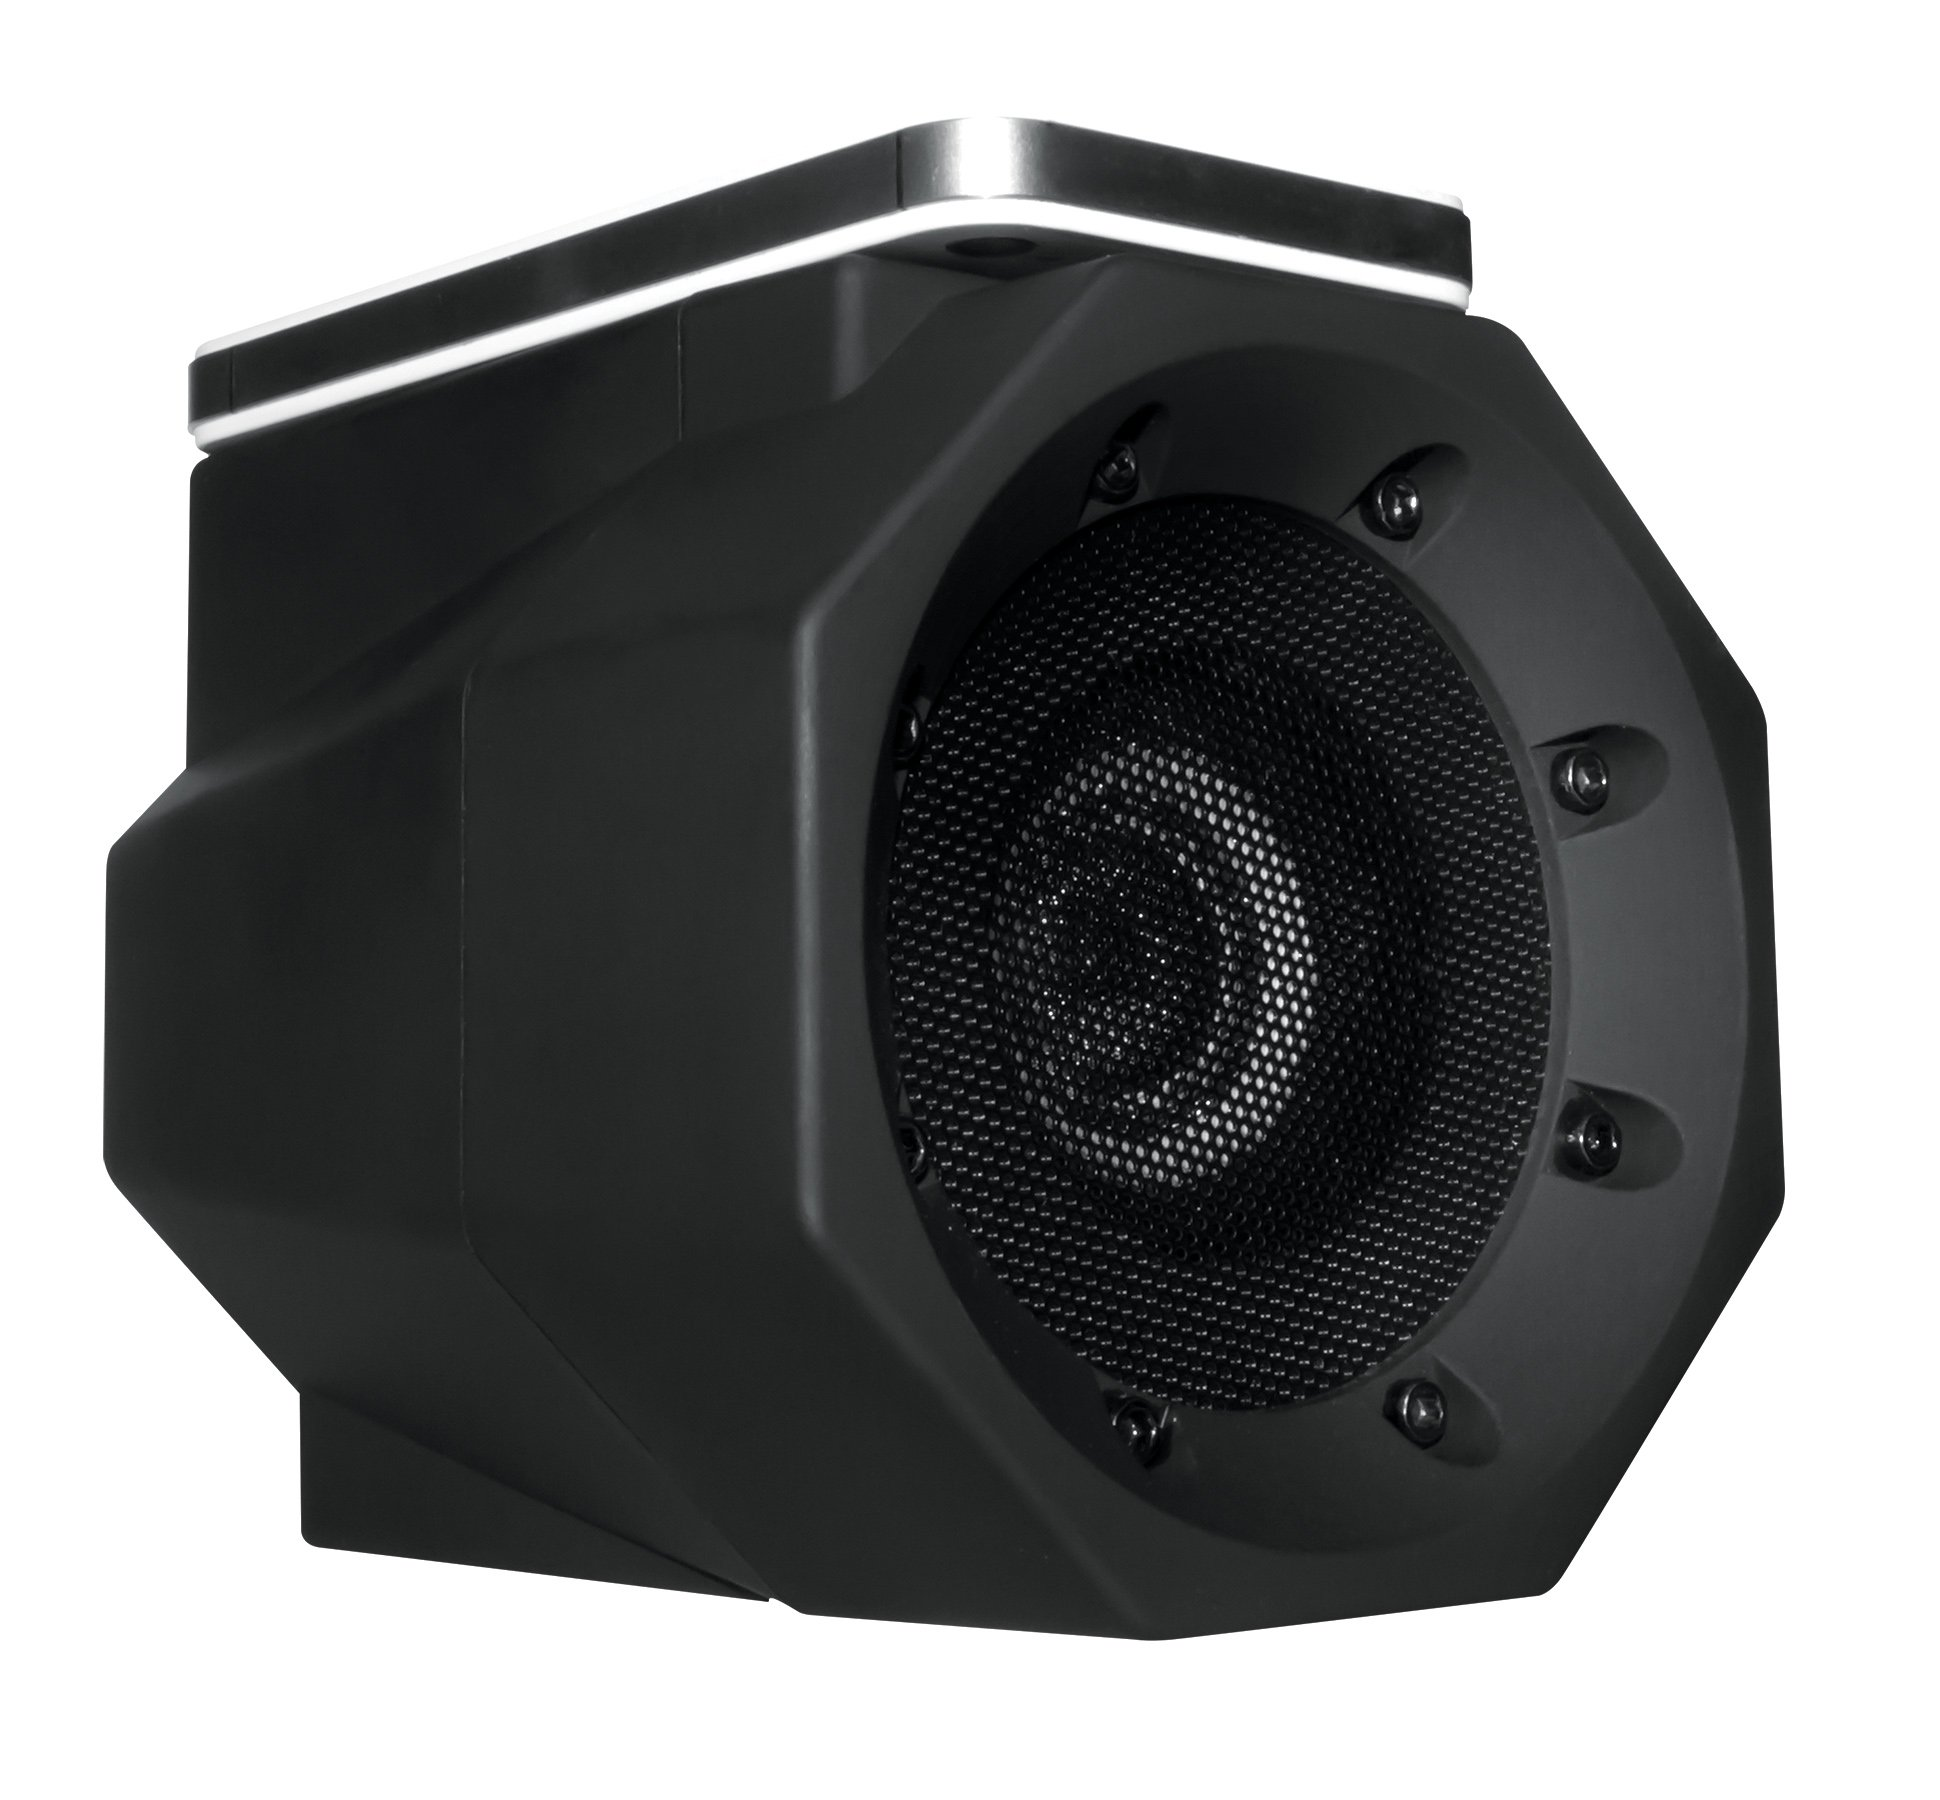 BoomTouch Wireless Touch Portable Speaker Boom Box (Black) by Allstar Innovations (Image #2)